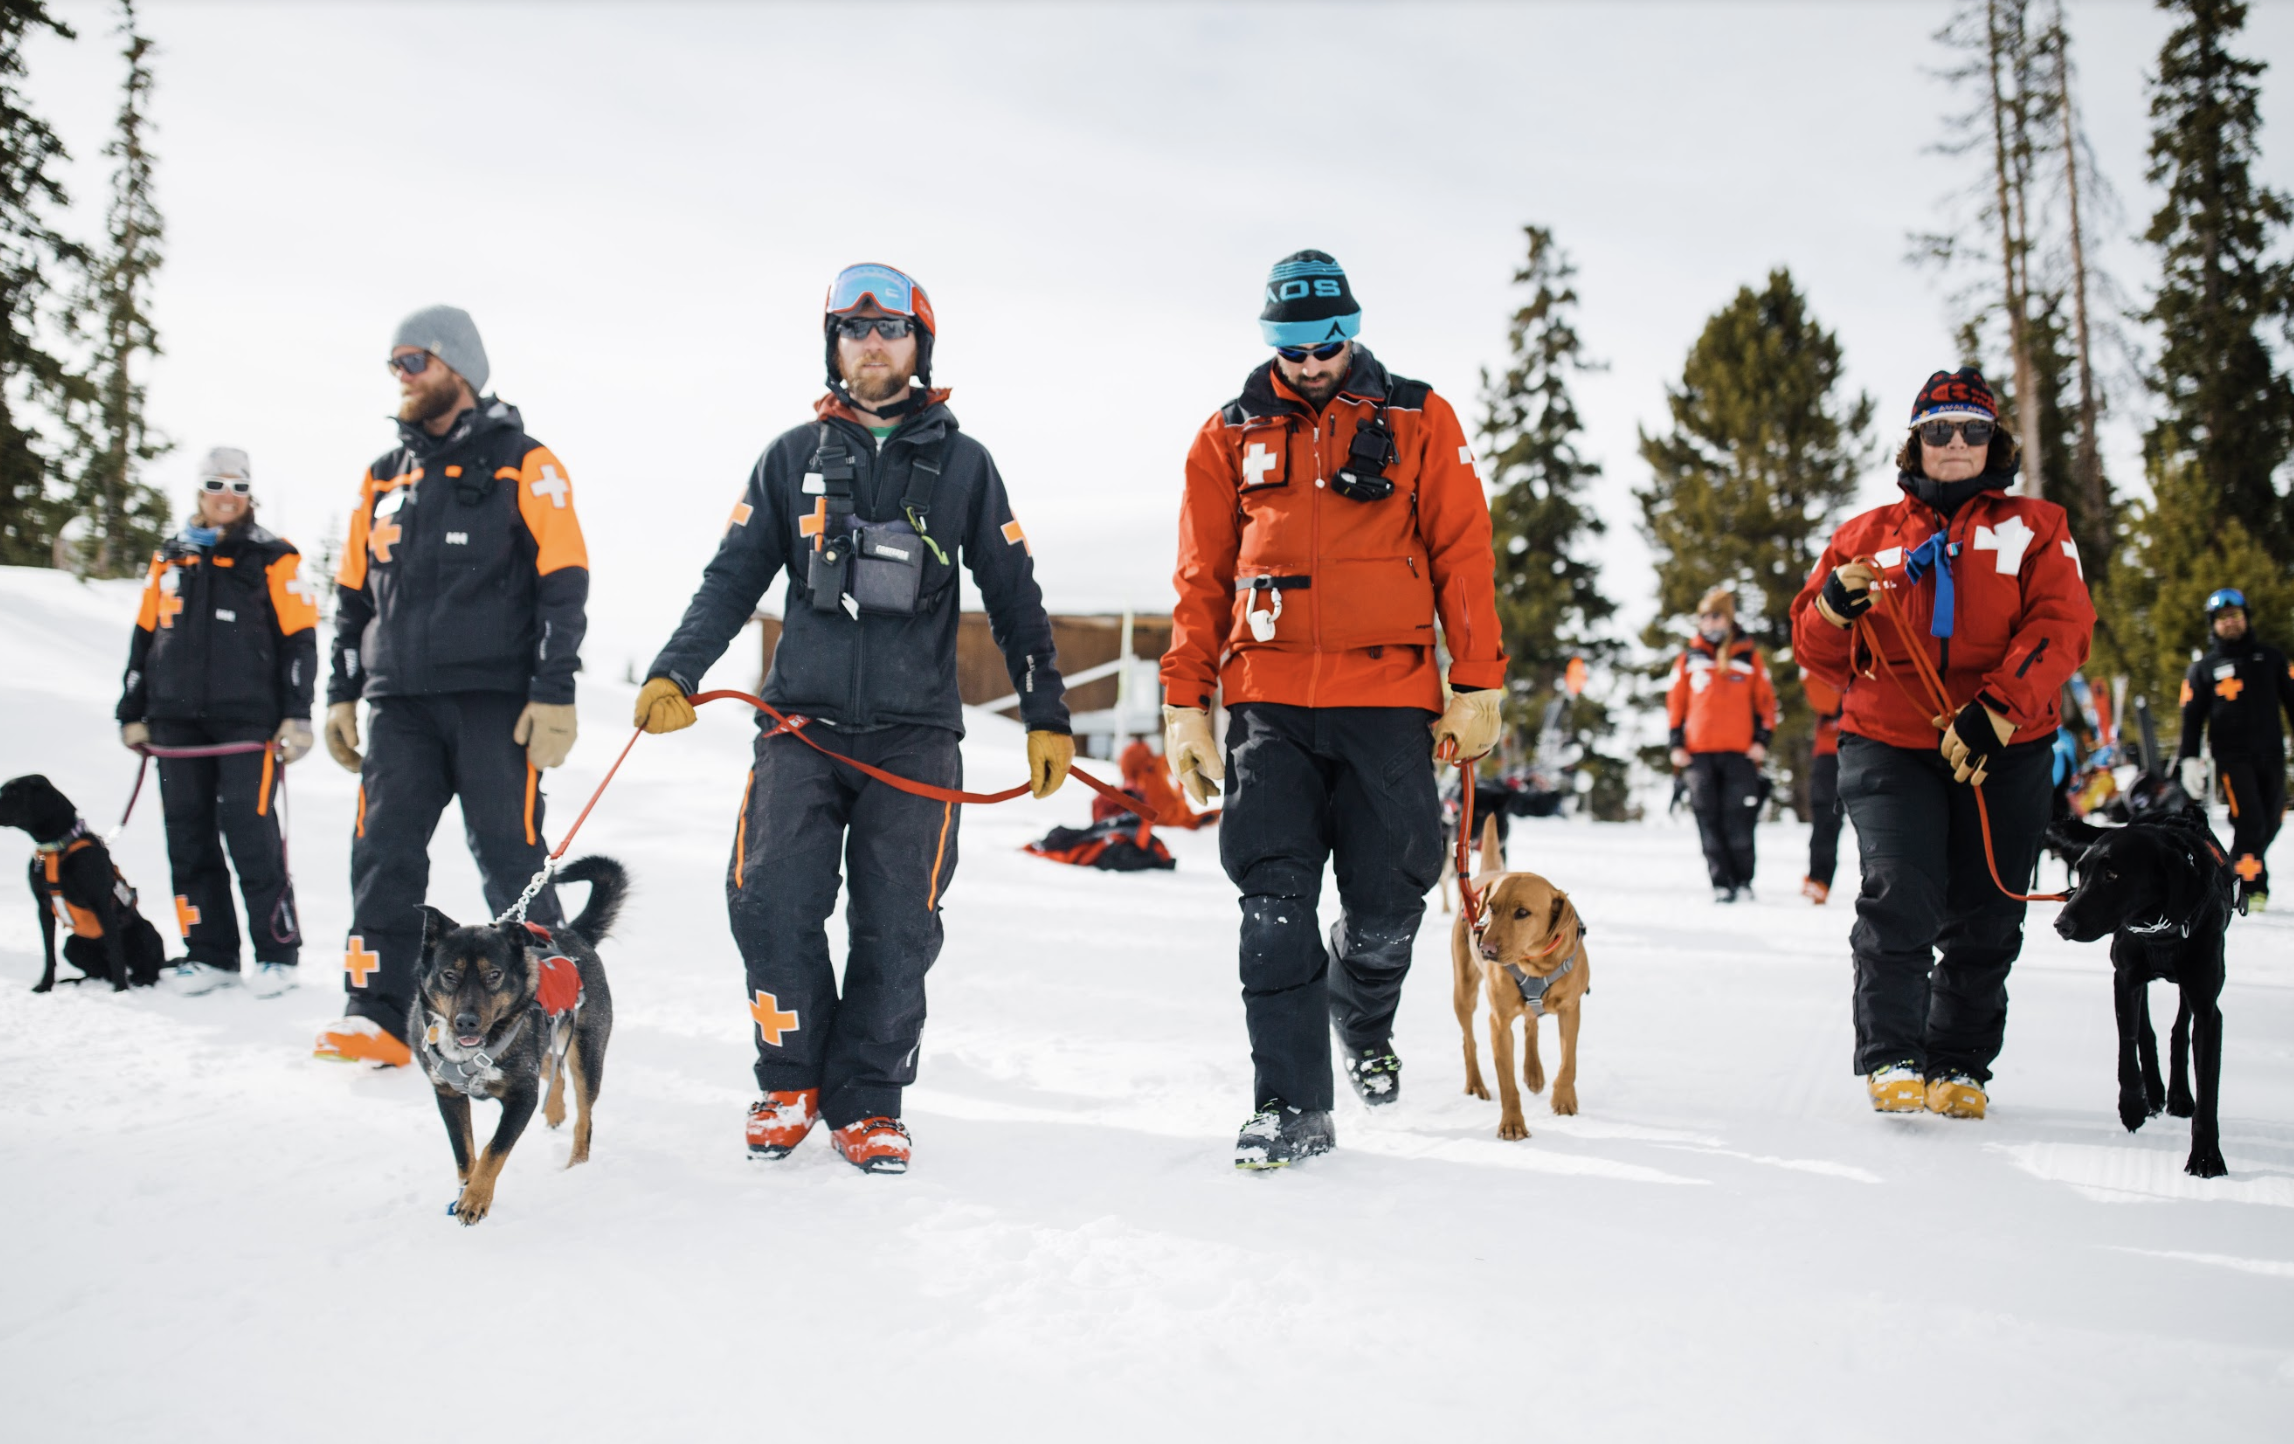 A group of C-RAD avalanche dog teams in Summit County, CO